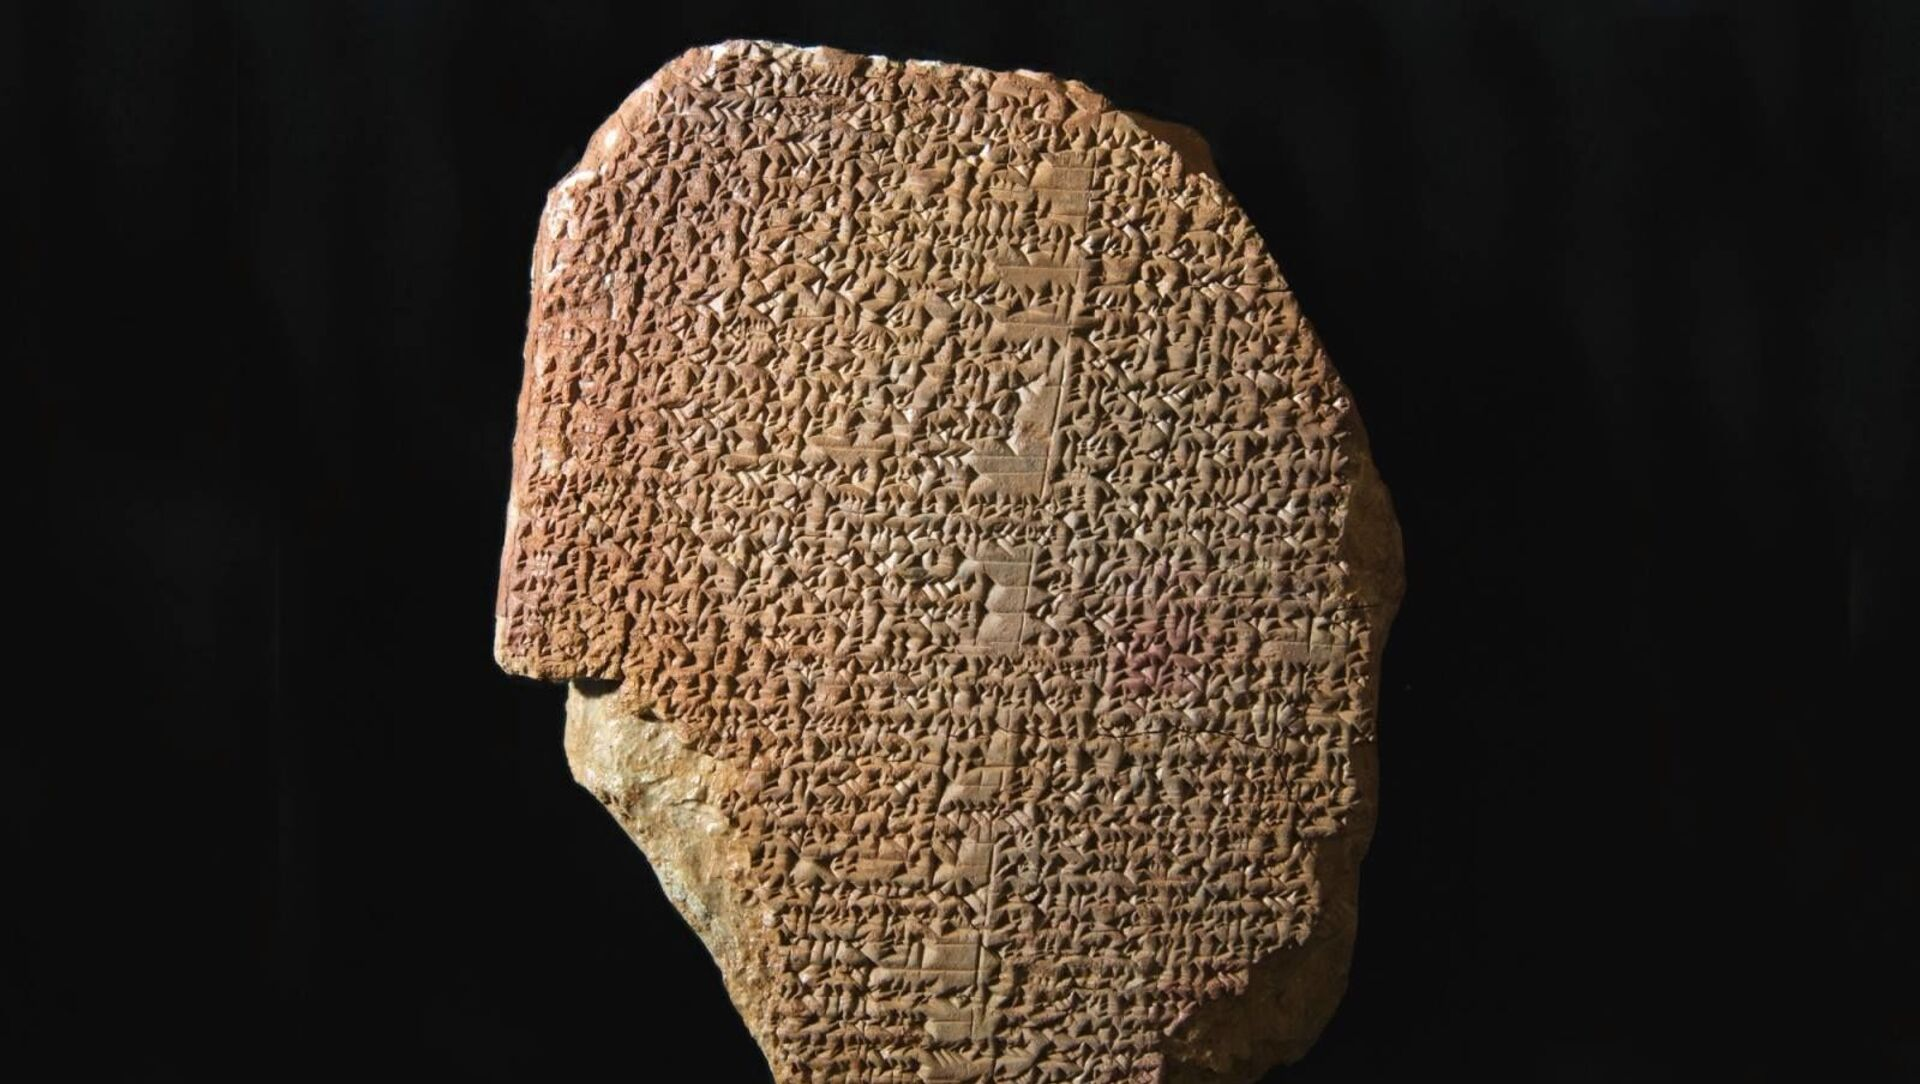 The Gilgamesh Epic is a term used for an extended narrative from the first millennium, but which is composed from older texts that exist in the Sumerian, Akkadian, Hittite, and Hurrian languages. It bears some connections with biblical texts, and tells, among other things, the story of a great flood. - Sputnik International, 1920, 03.08.2021